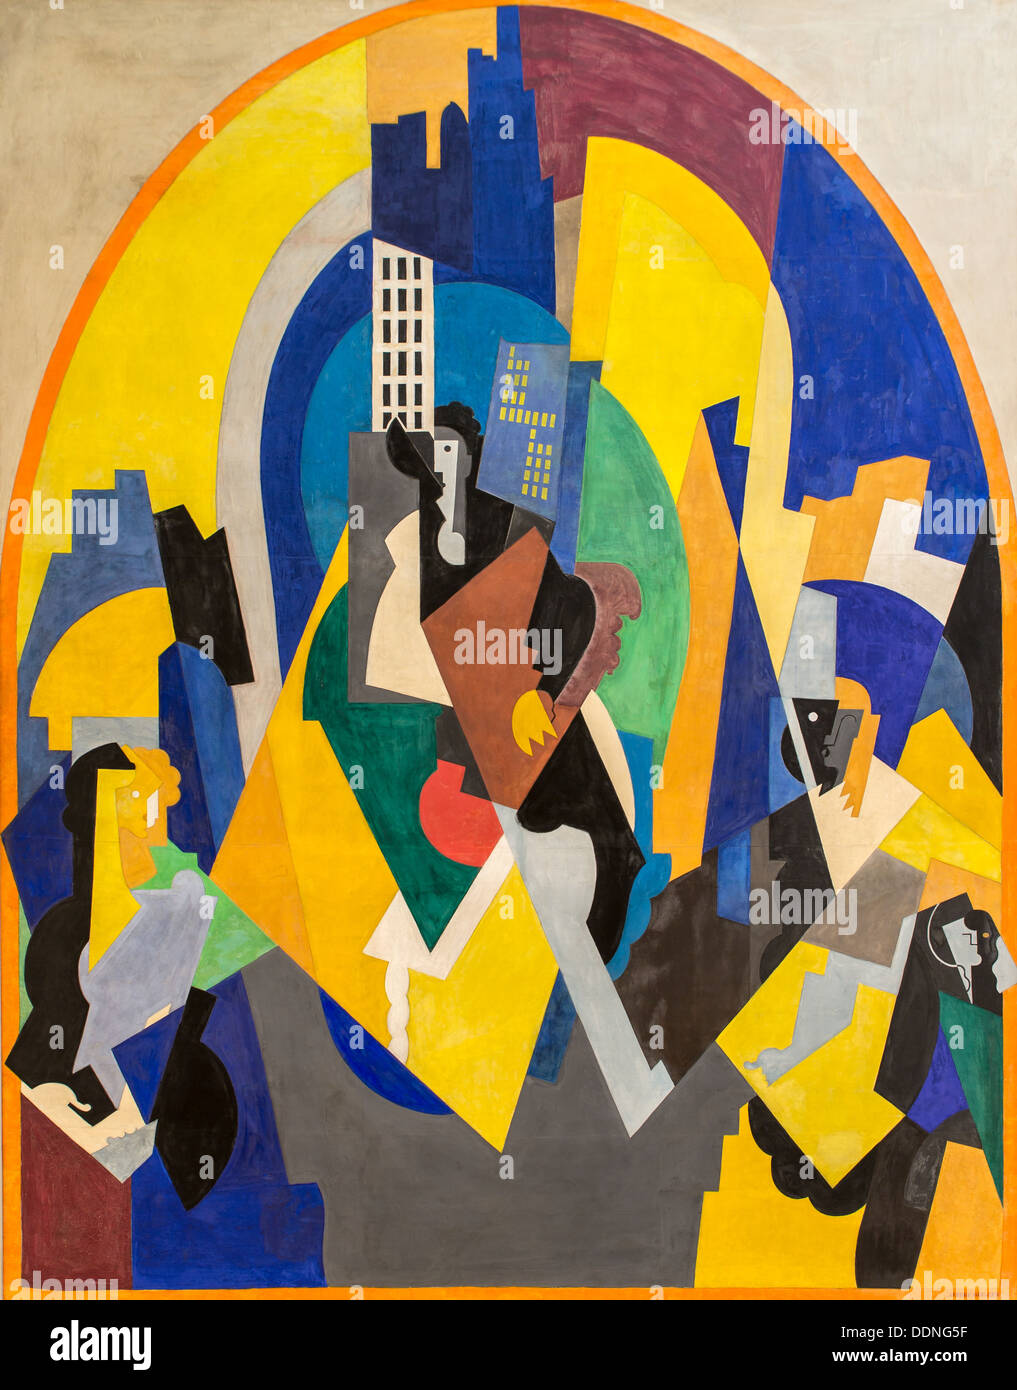 20th century  -  Punctuated space according to plan, 1920 - Albert Gleizes Philippe Sauvan-Magnet / Active Museum Oil on canvas - Stock Image